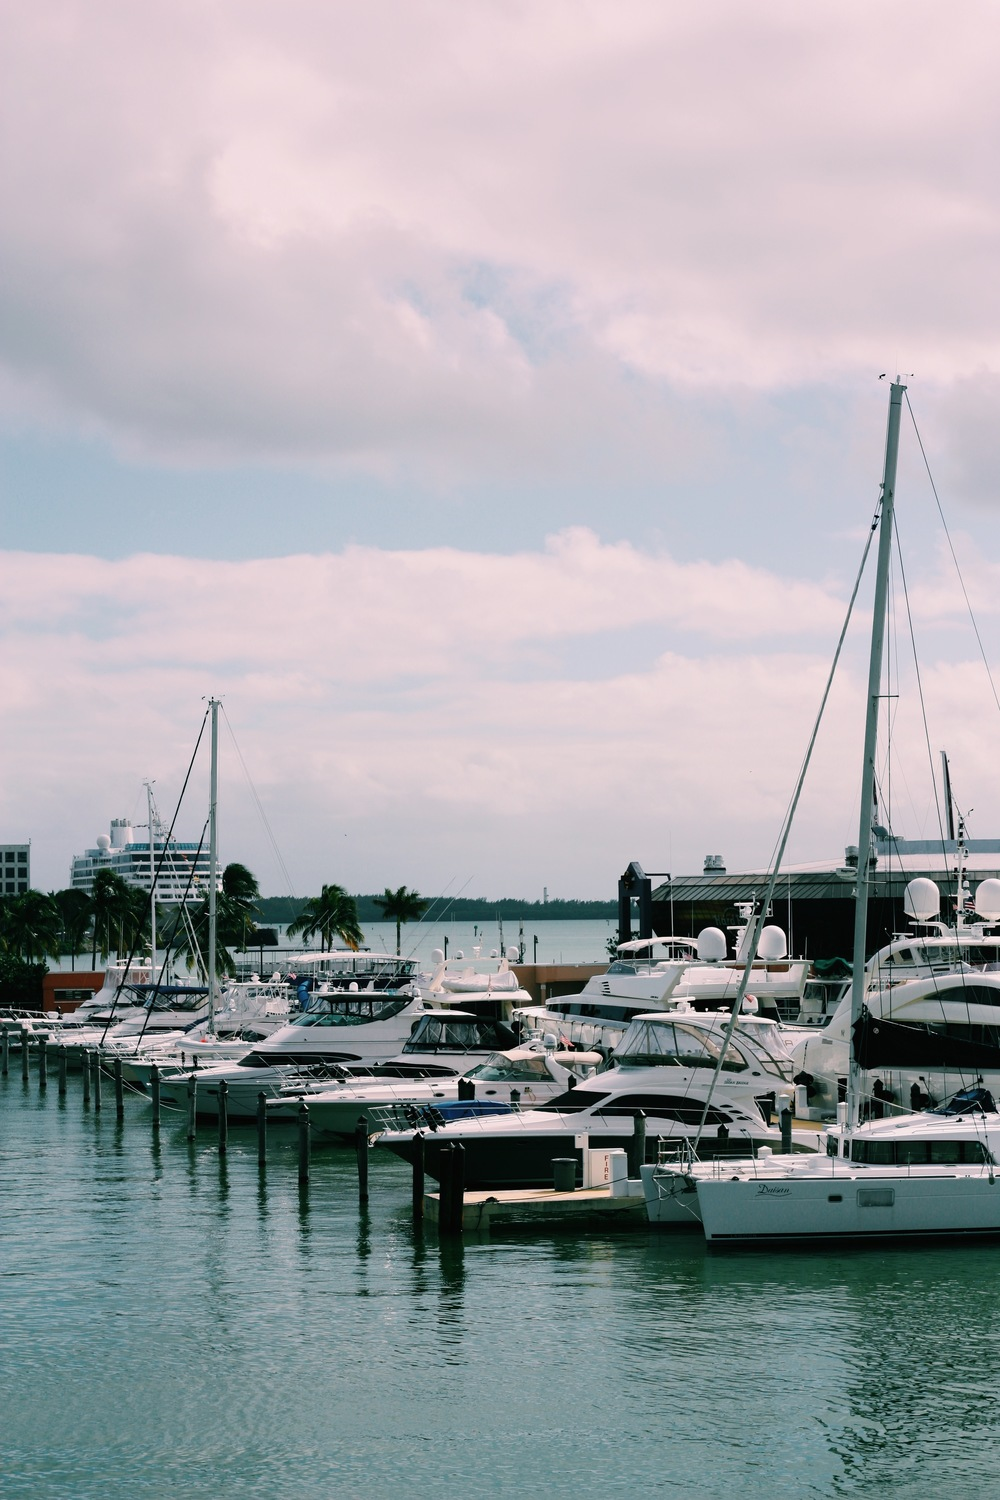 Bayside. Compared to the hustle and bustle of New York City, Miami has a playful kind of energy that is more laidback.